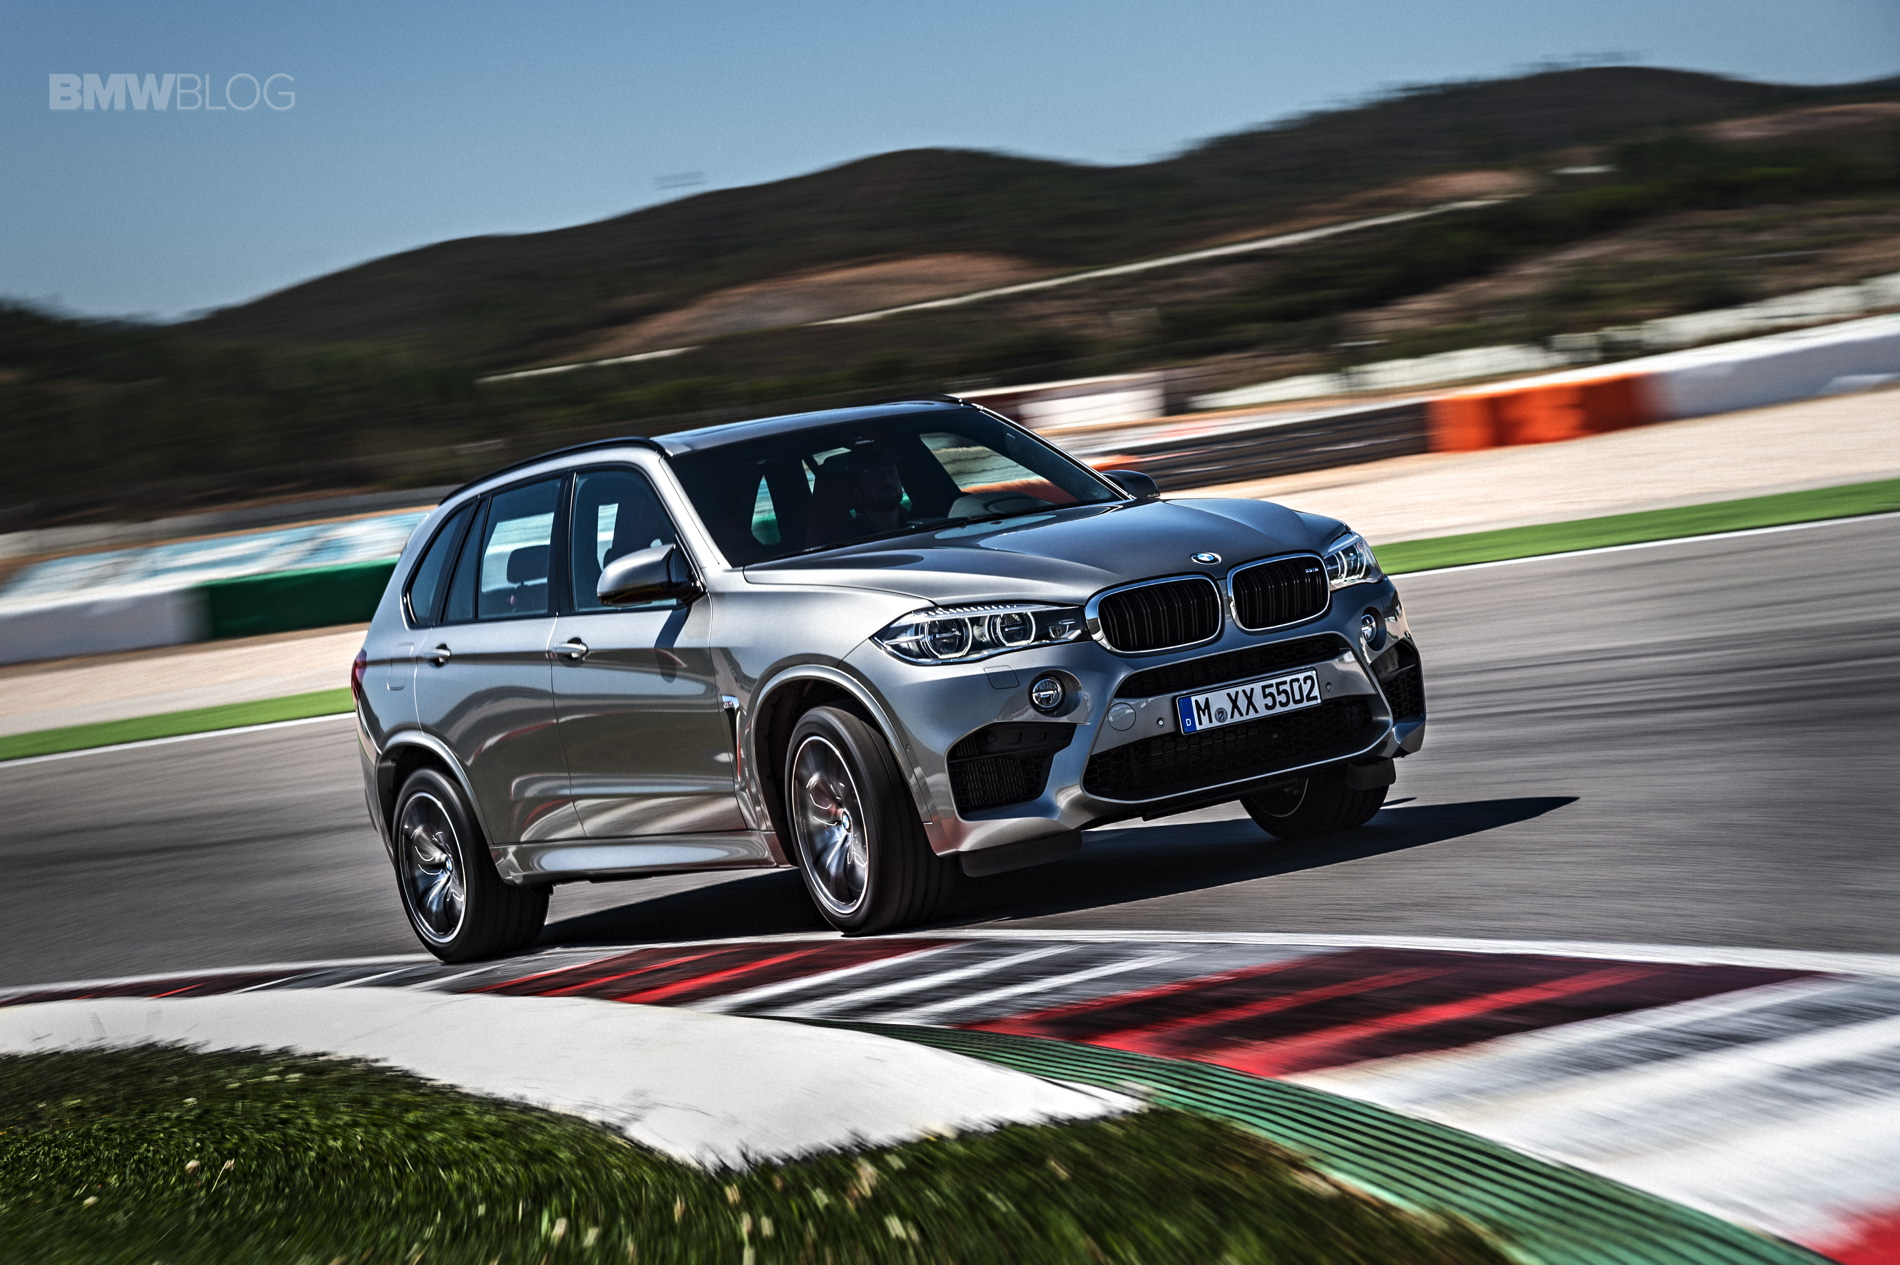 new bmw x5 m images 01